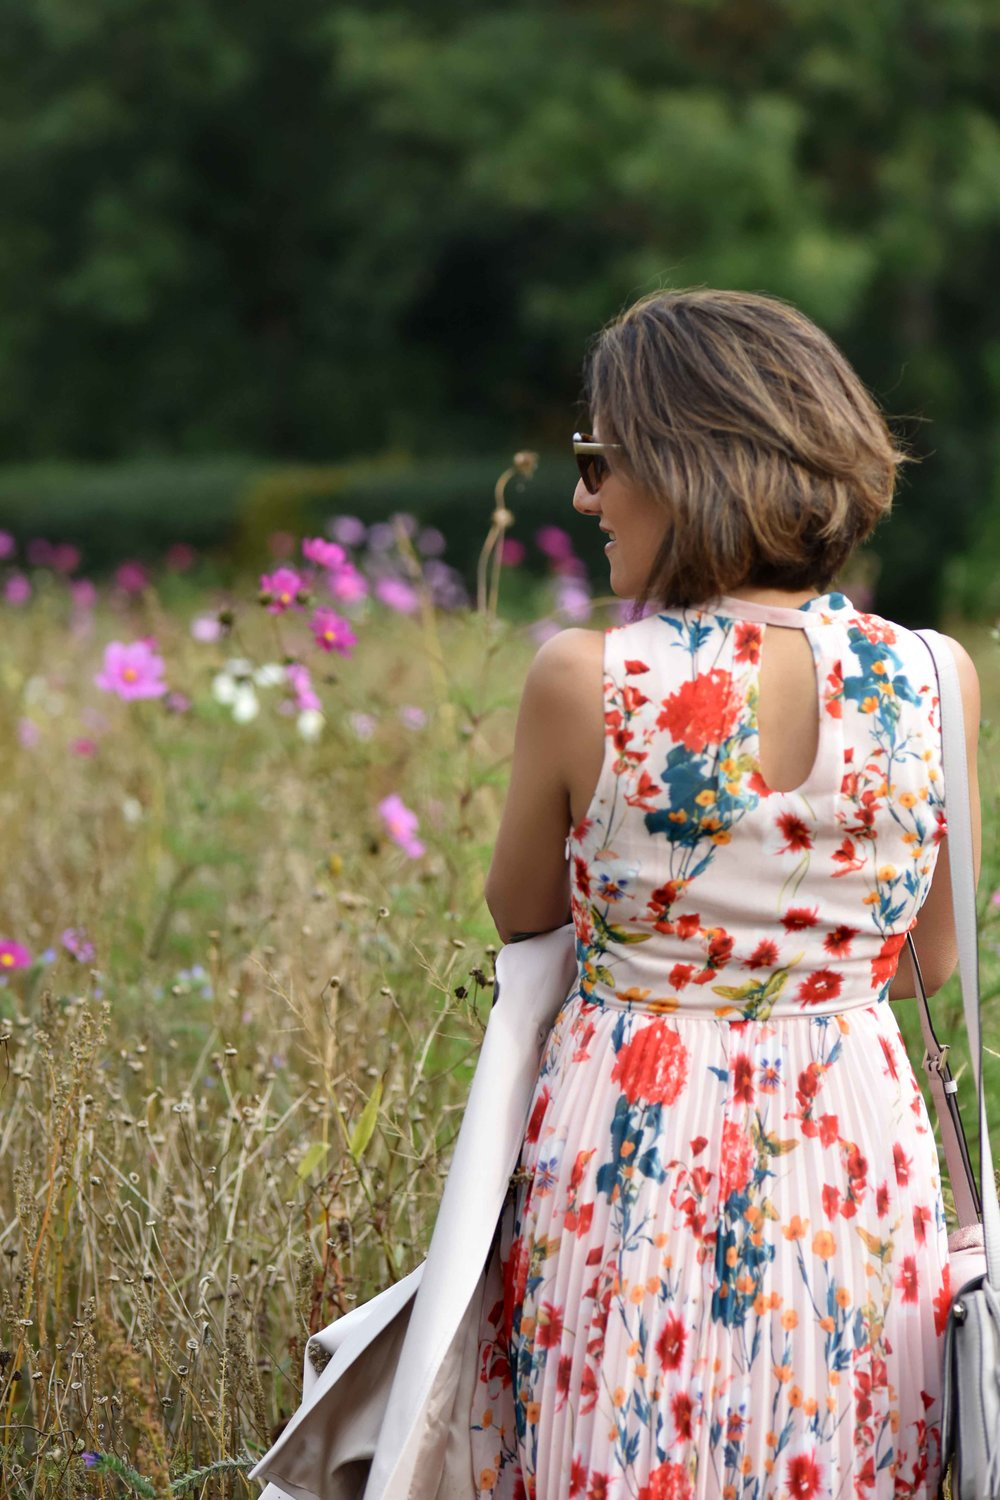 Karen Millen floral summer dress, flower fields, Coworth Park hotel, Ascot. Image©sourcingstyle.com